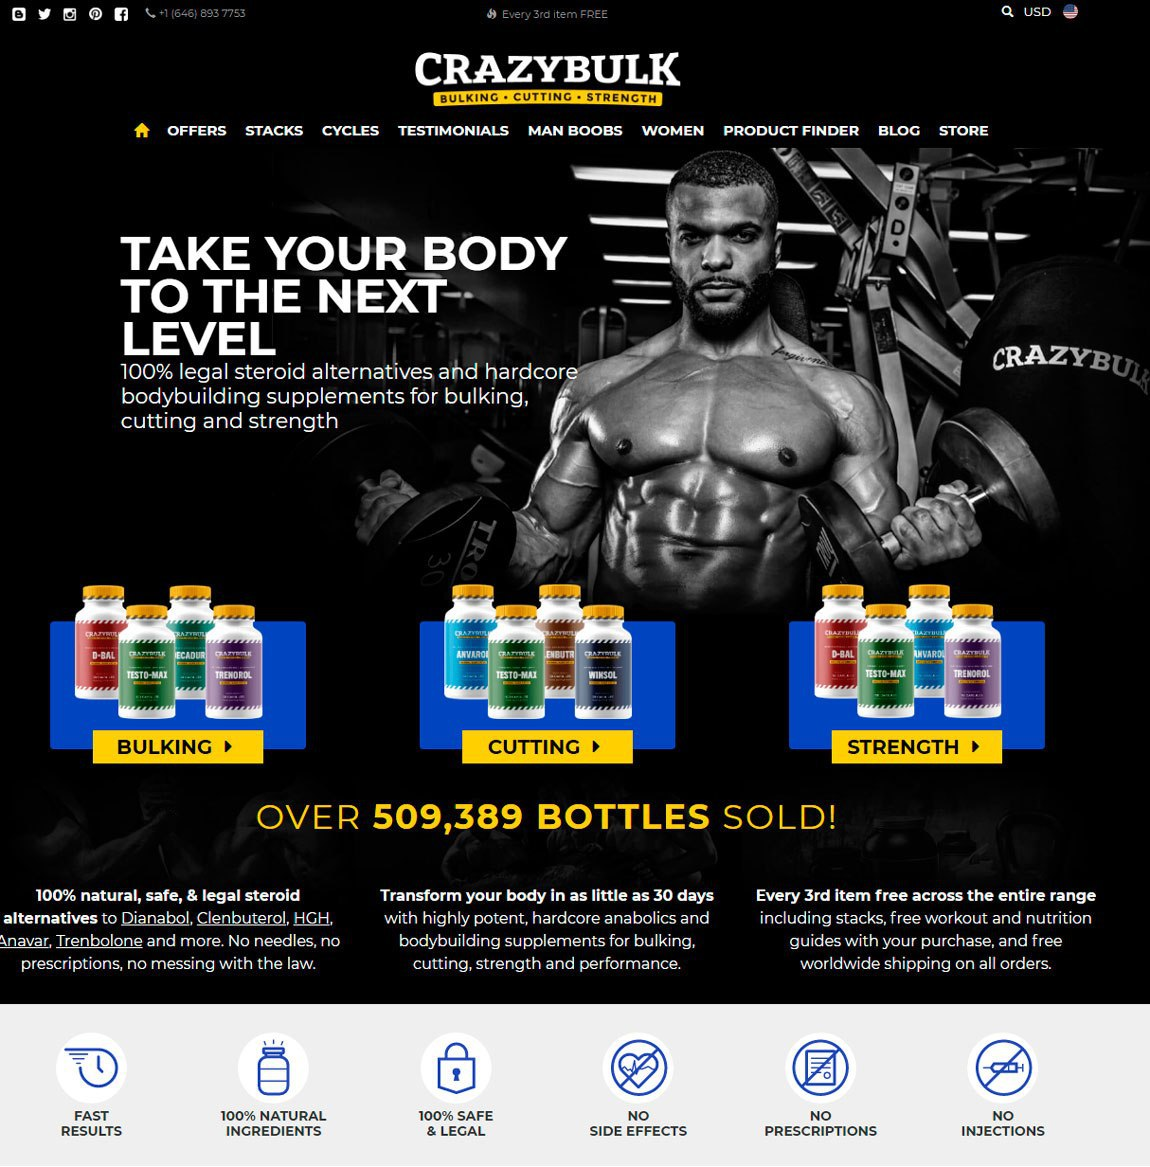 Crazy bulk clenbuterol before and after